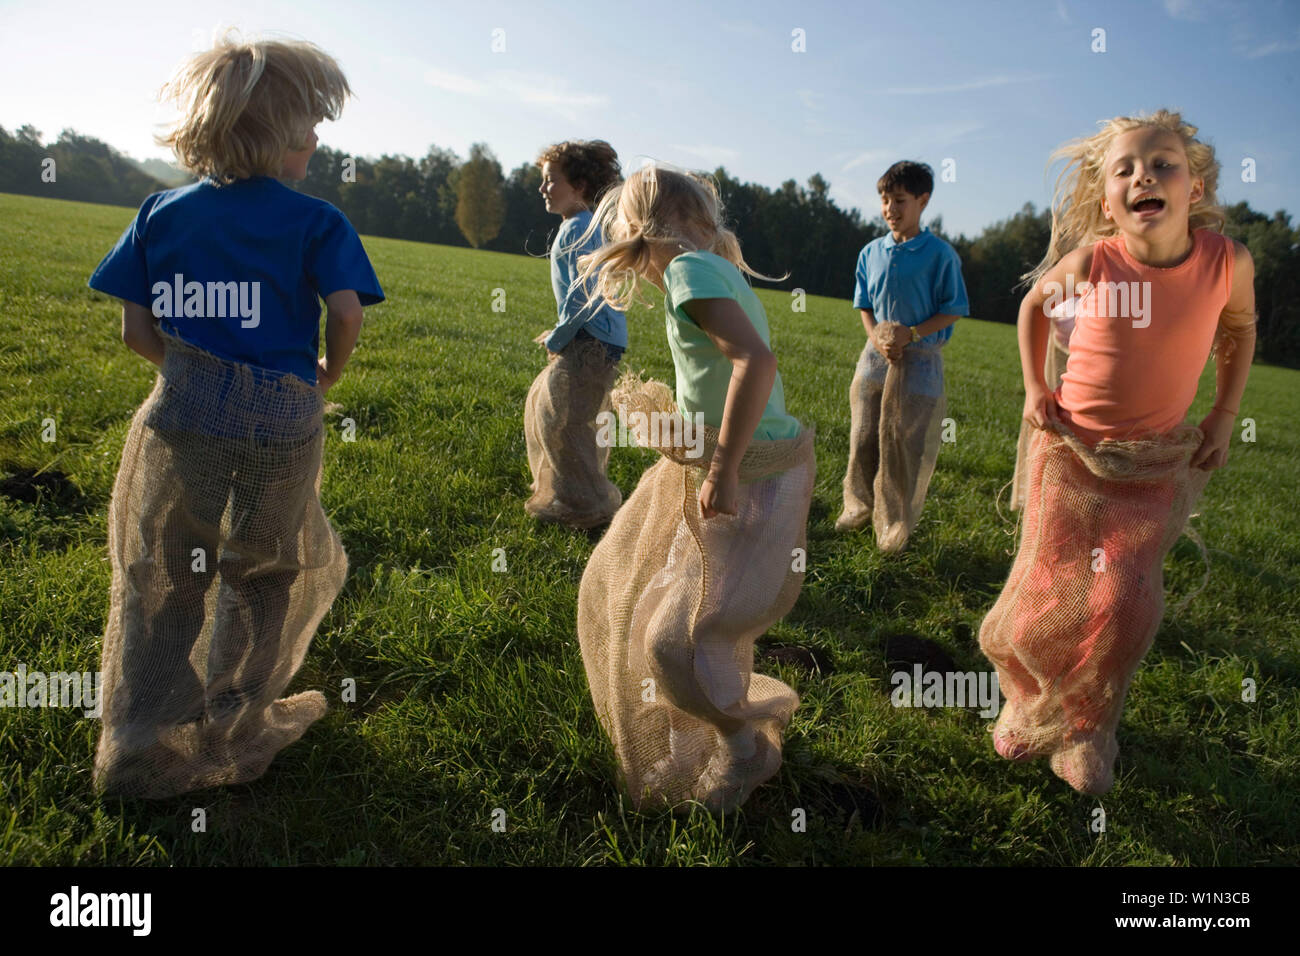 Group of children having a sack race, children's birthday party - Stock Image